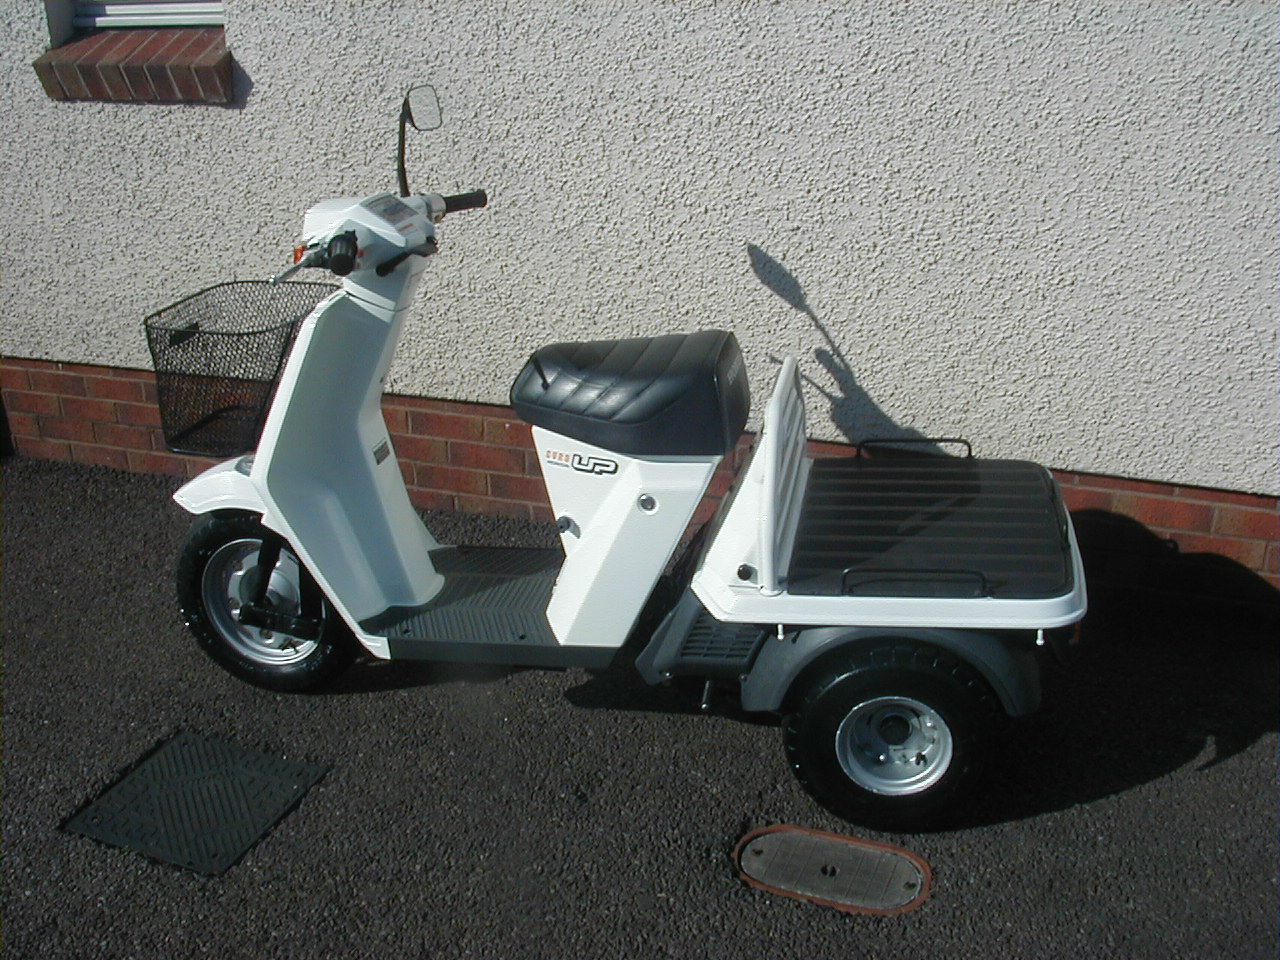 honda gyro up 3 wheeled scooter 50cc two stroke large. Black Bedroom Furniture Sets. Home Design Ideas